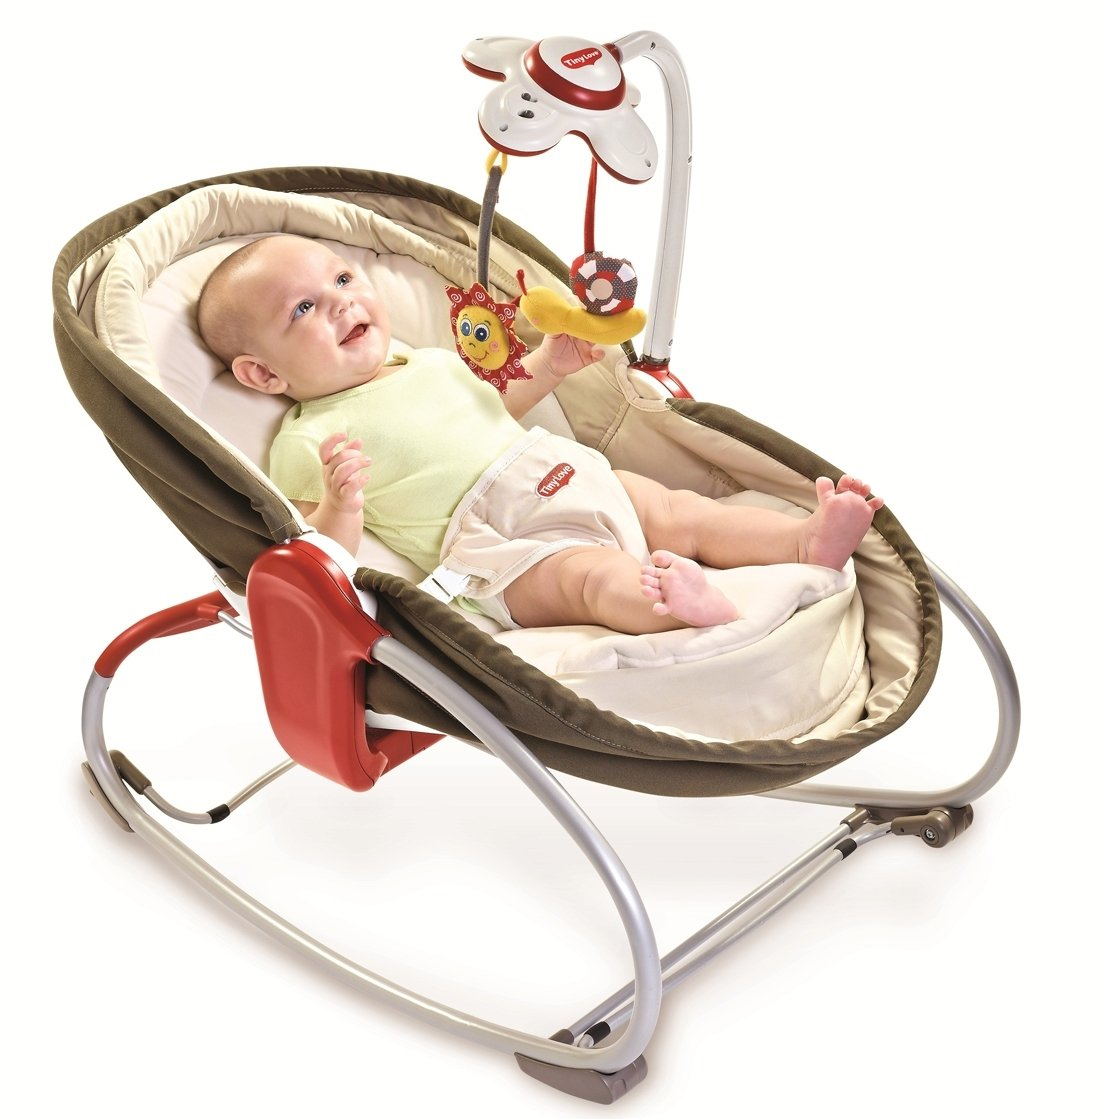 Electric baby rocker chair - Amazon Com Tiny Love 3 In 1 Rocker Napper Brown Infant Bouncers And Rockers Baby